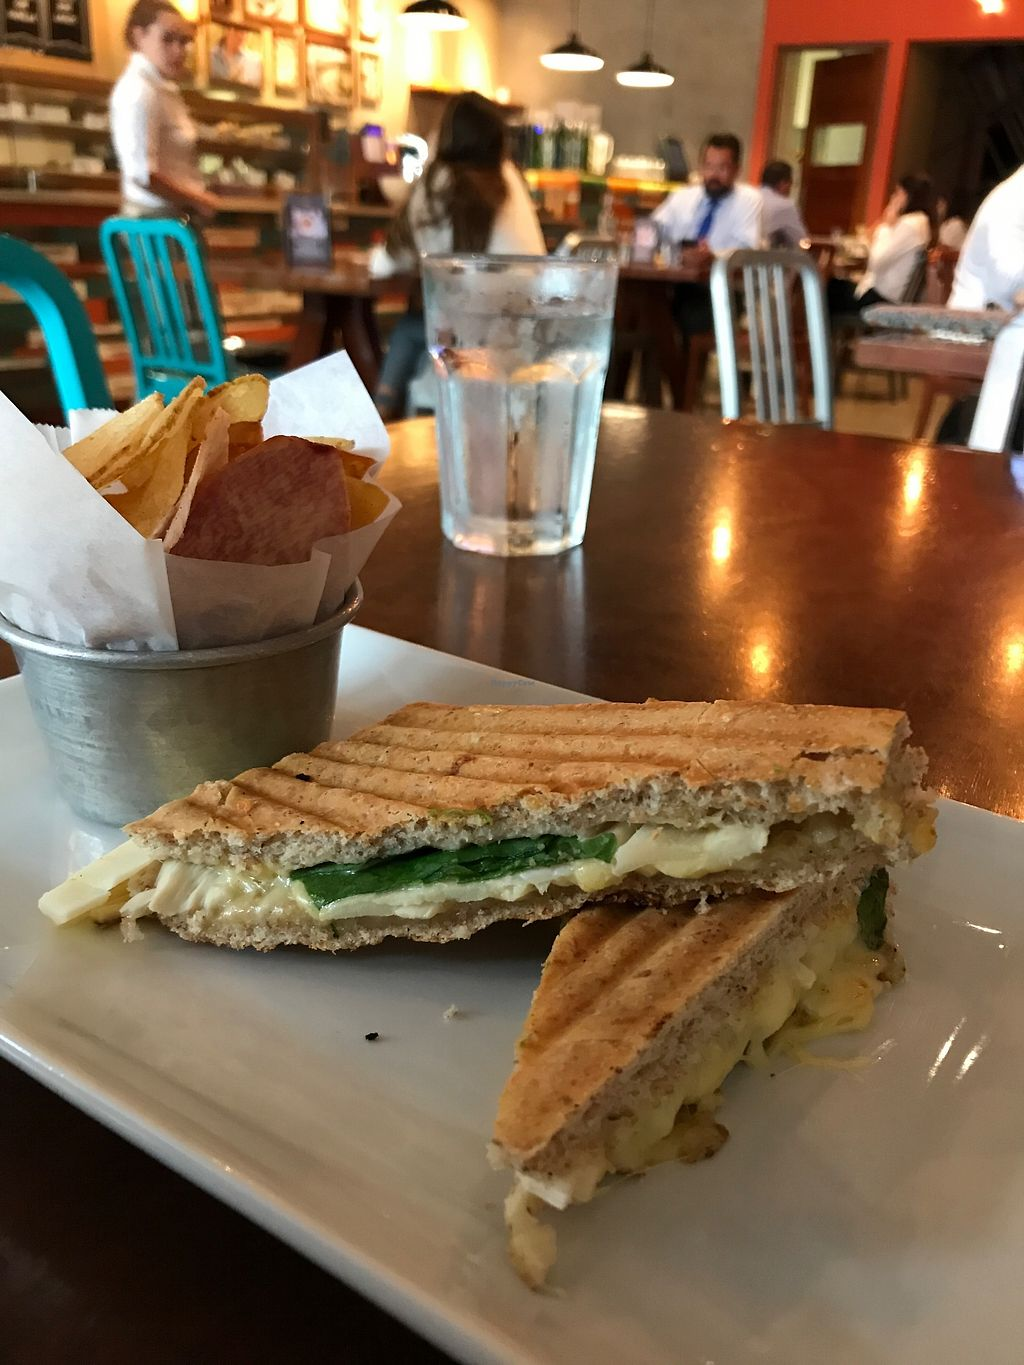 "Photo of Bulali  by <a href=""/members/profile/Longina"">Longina</a> <br/>Heart of palm and cheese sandwich <br/> August 31, 2017  - <a href='/contact/abuse/image/44470/299481'>Report</a>"